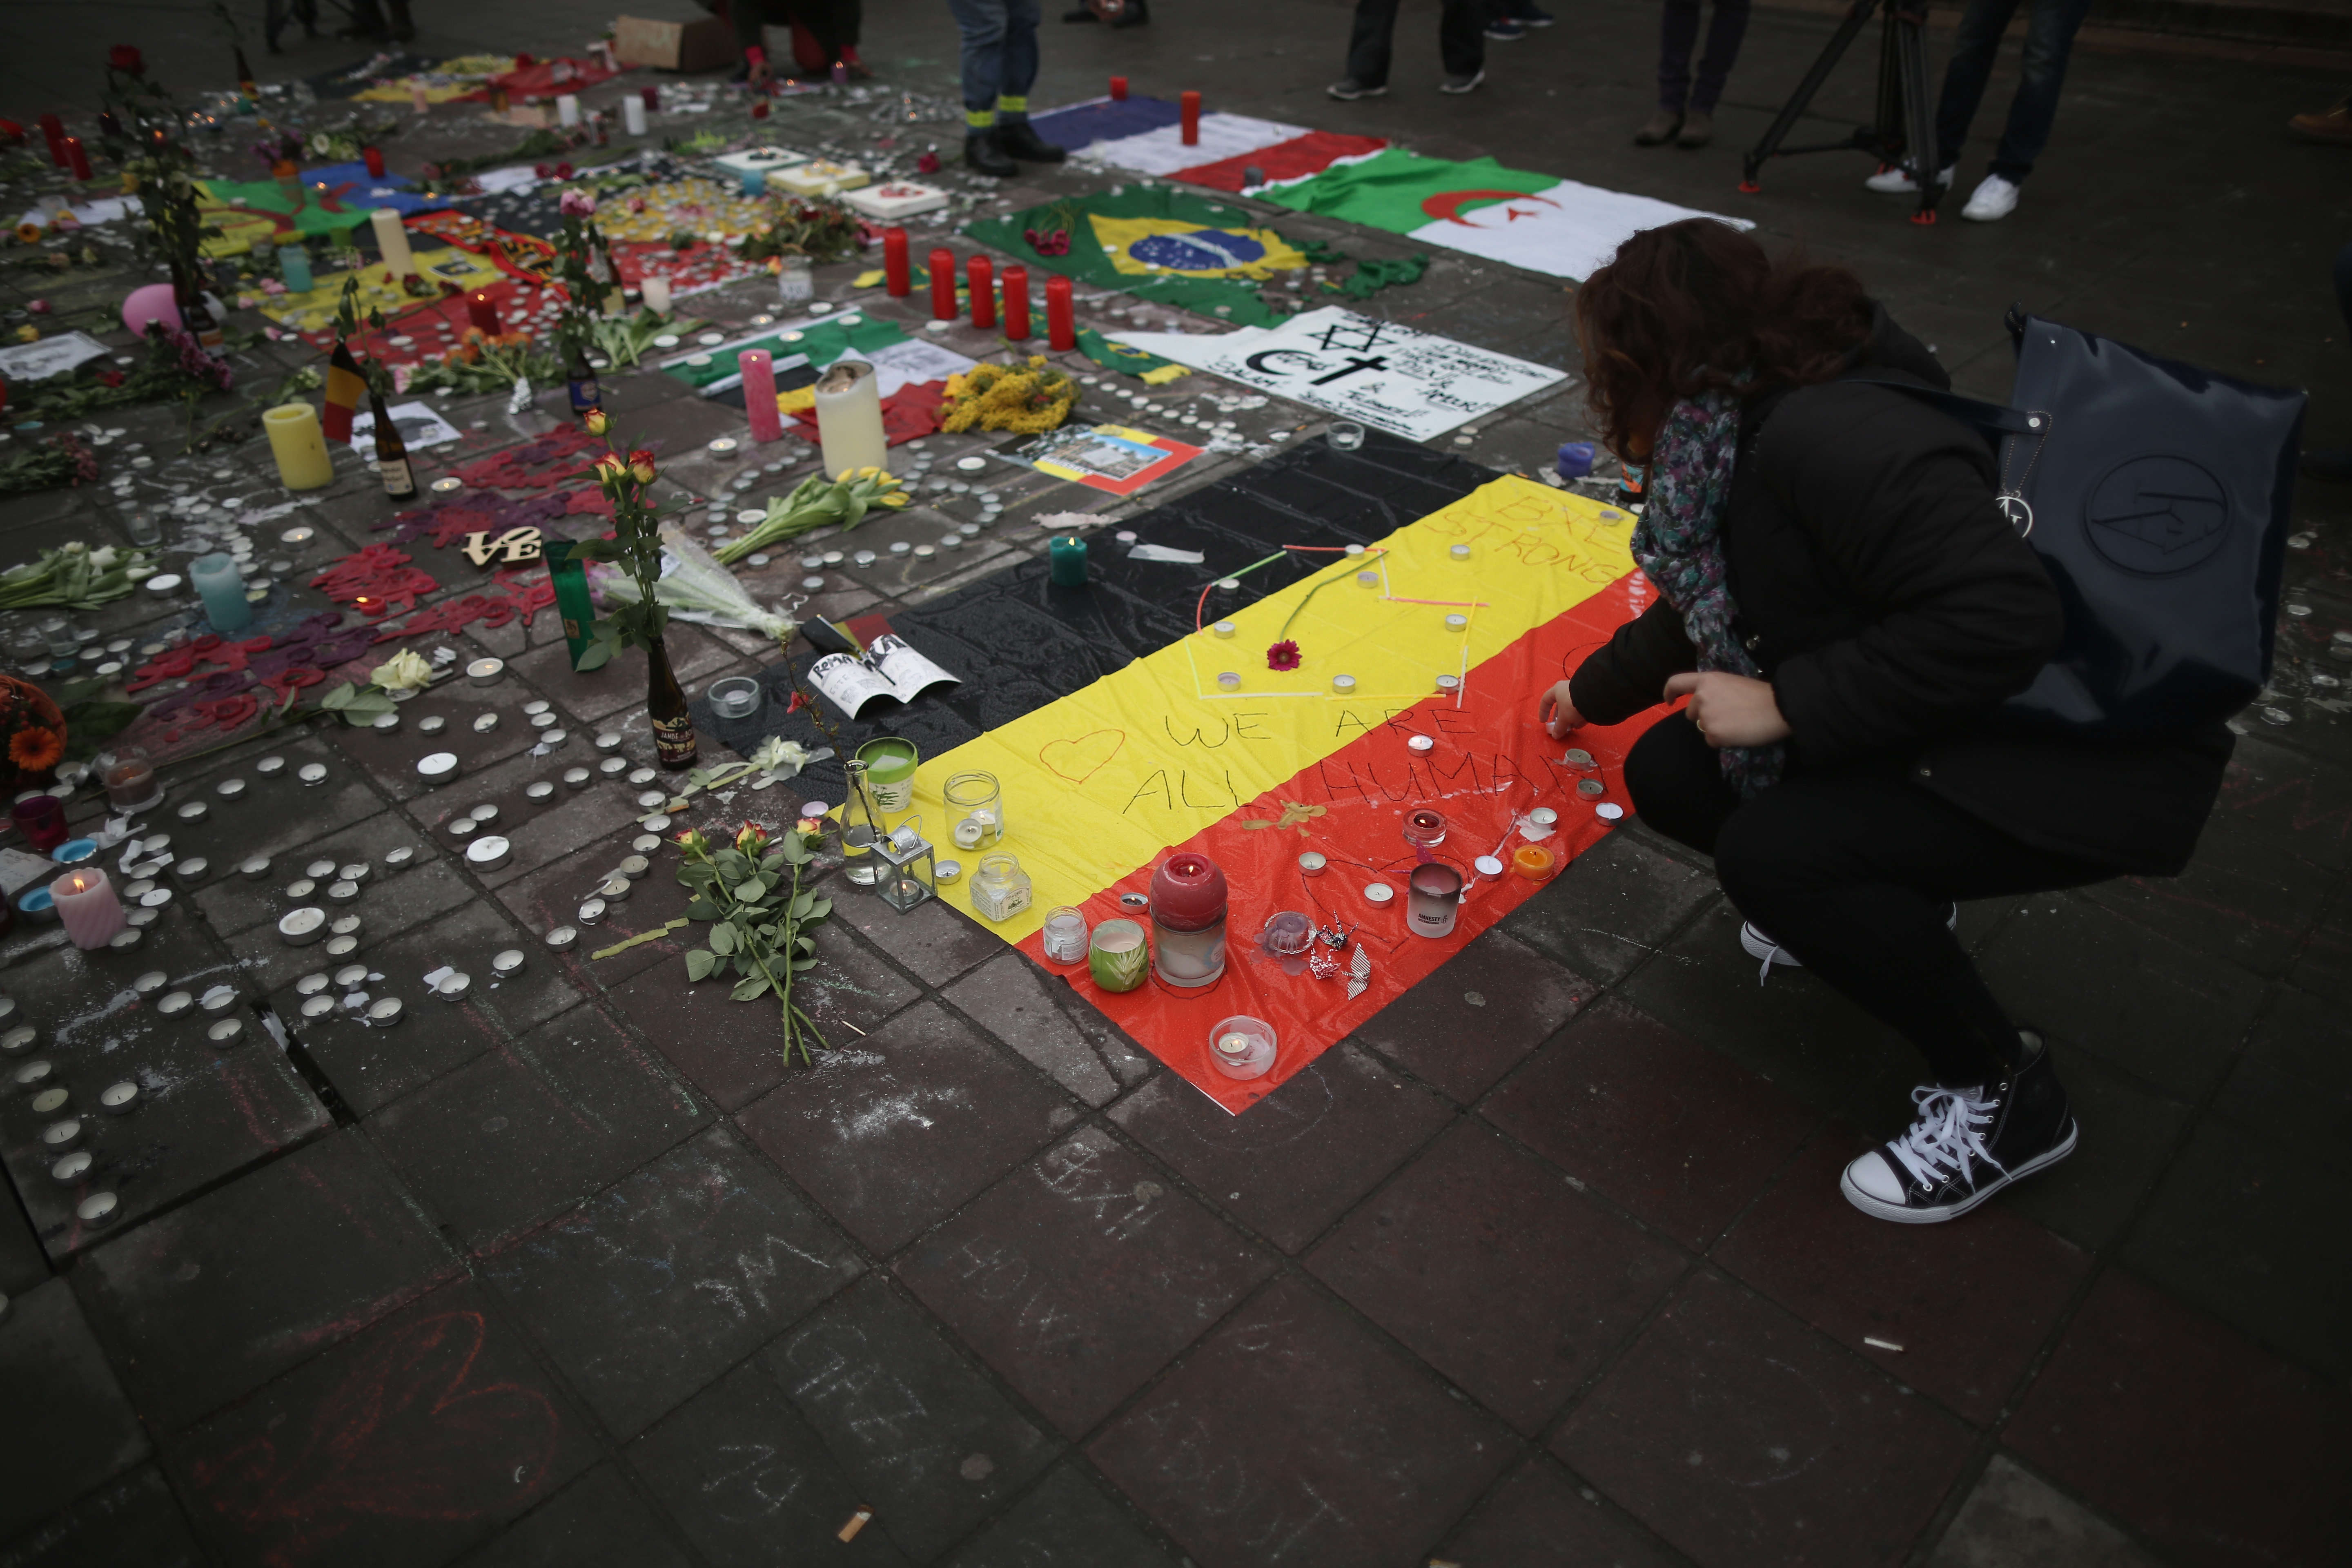 BREAKING: As Main Suspect Arrested, Heres The Latest On Brussels Attacks GettyImages 517032900